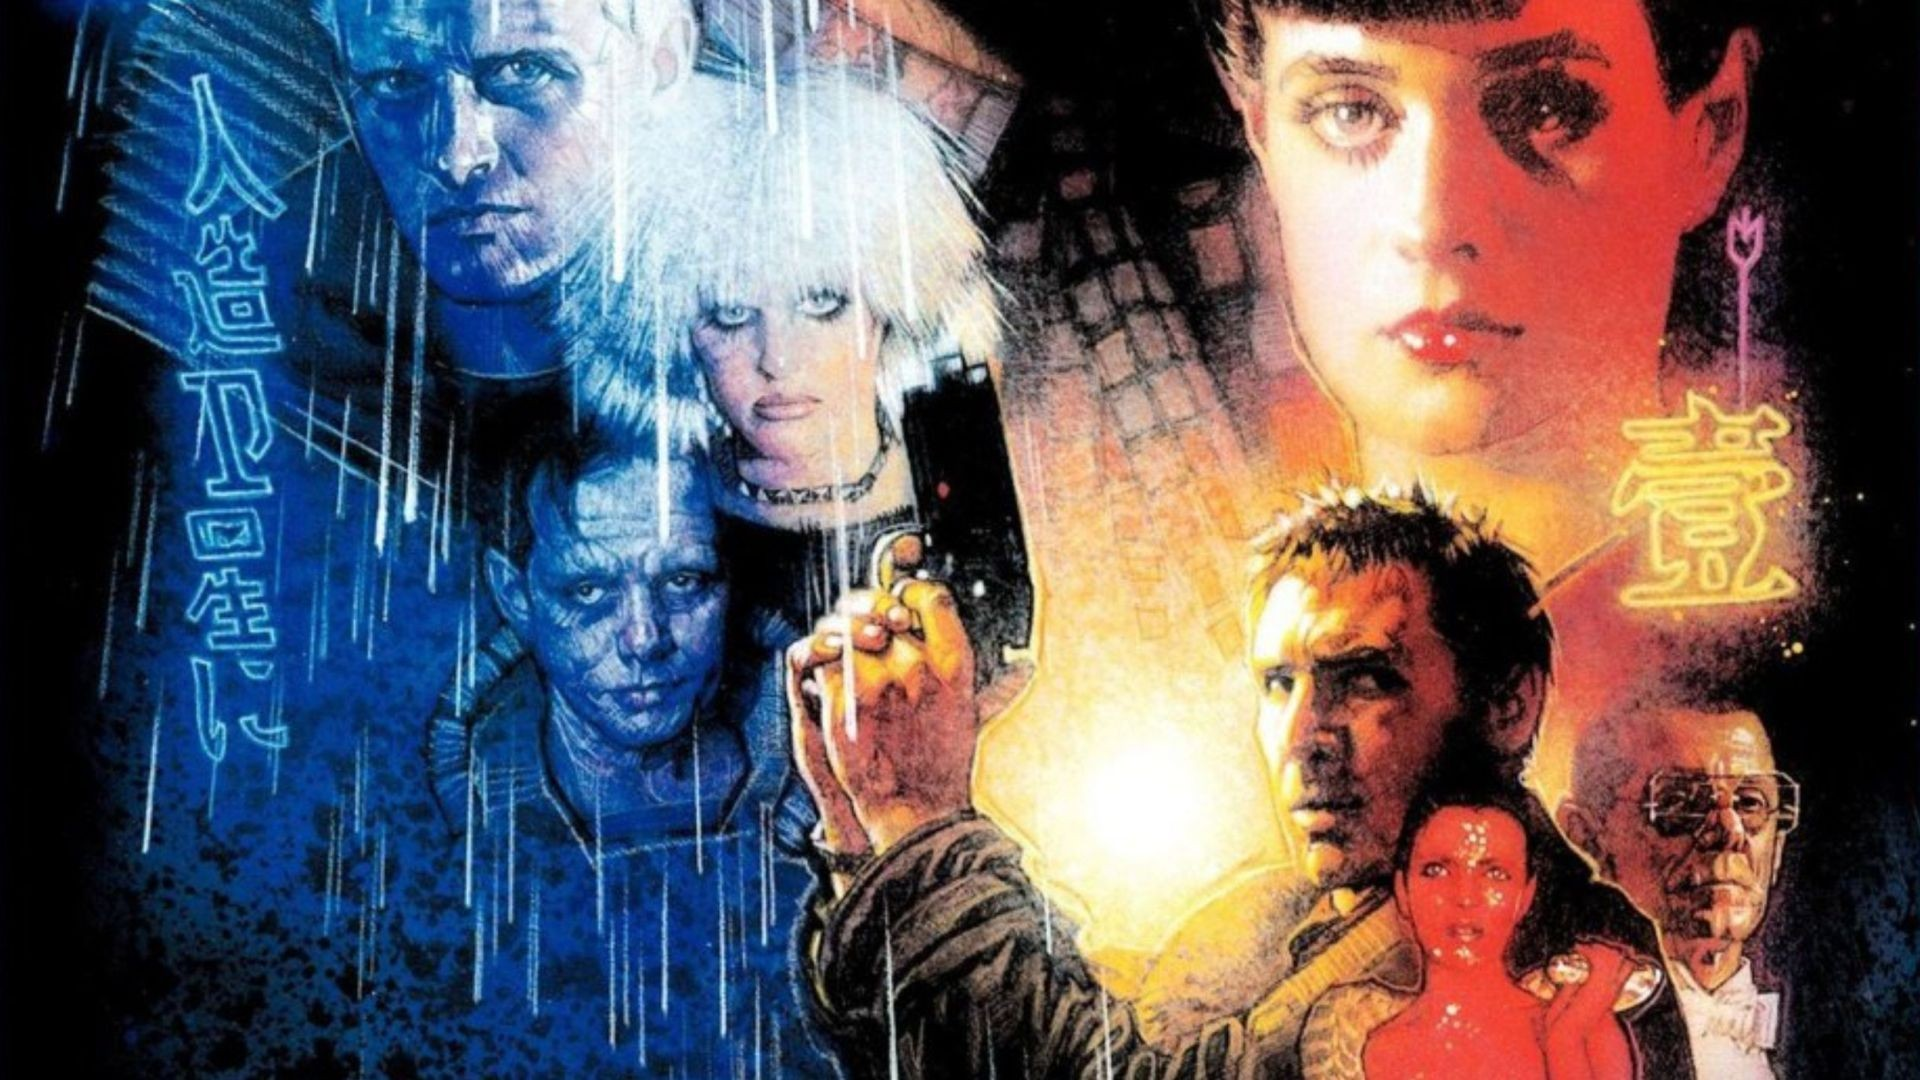 Ryan Gosling Confirms Role For Blade Runner Sequel